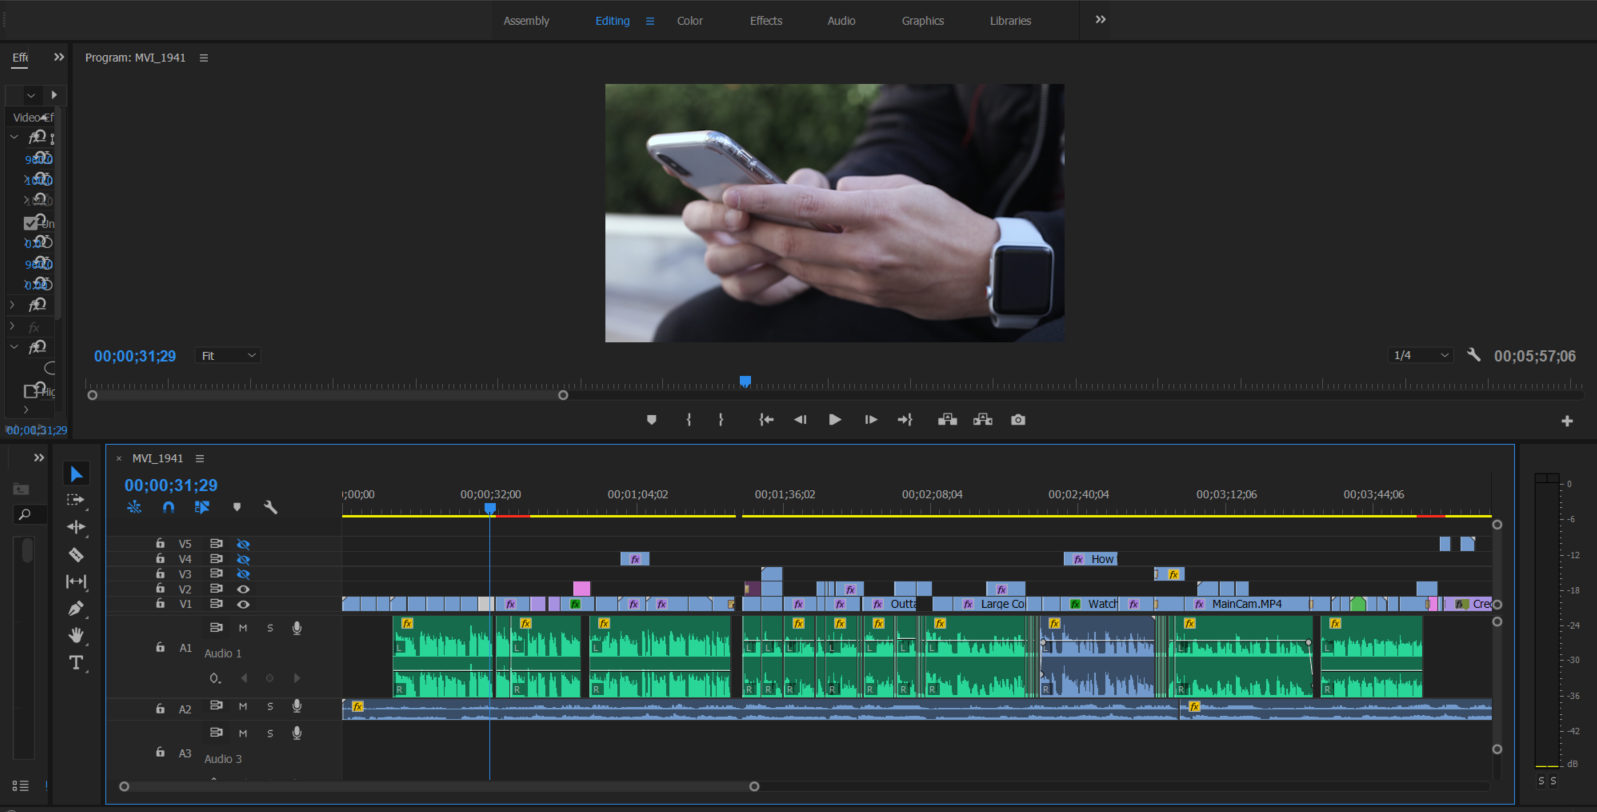 Screenshot of Adobe Premiere Pro workspace for the documentary.